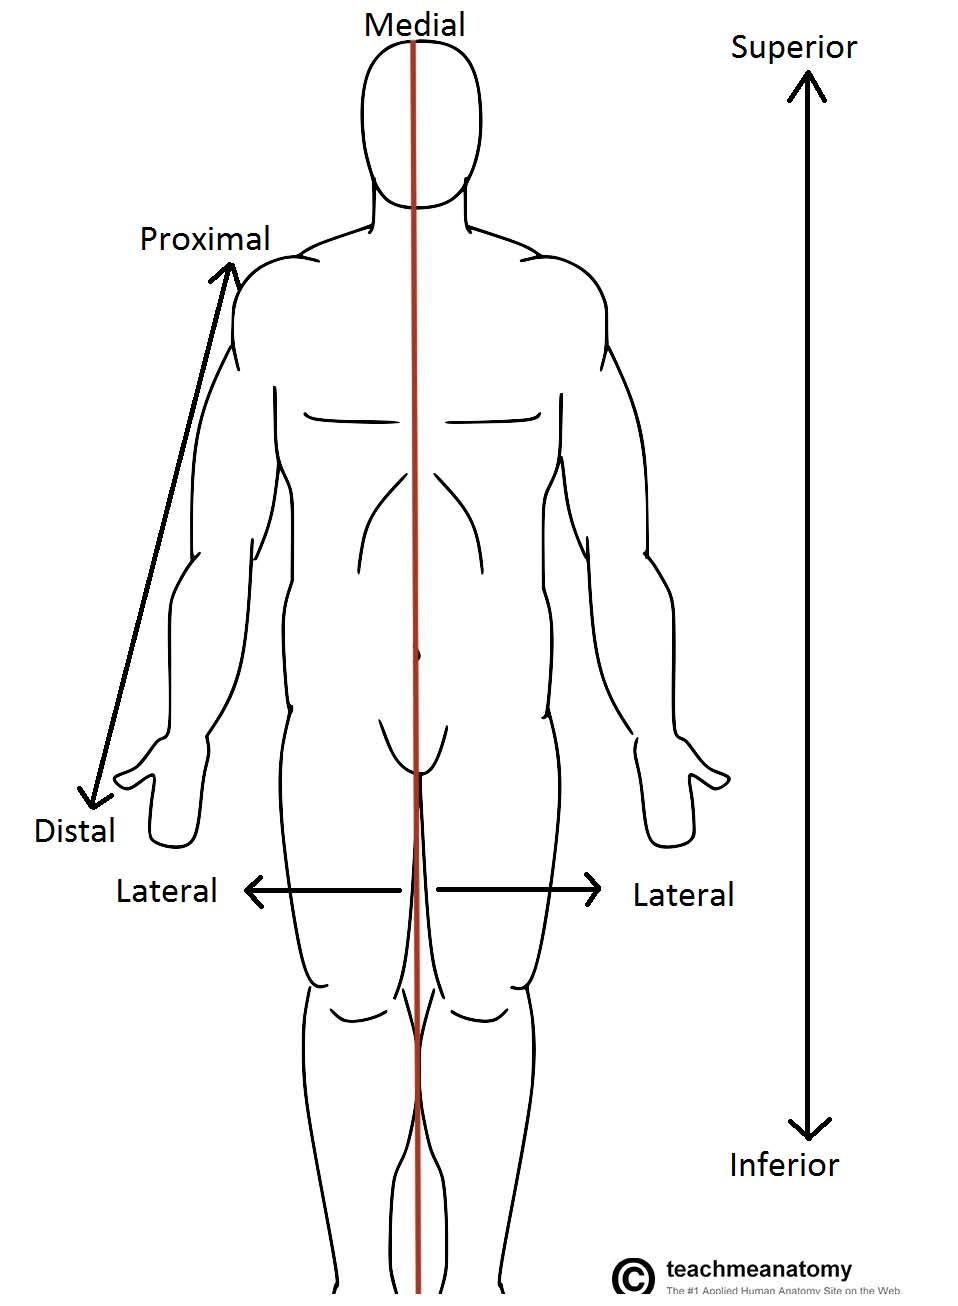 Fig 1.0 - Anatomical terms of location labelled on the anatomical position.